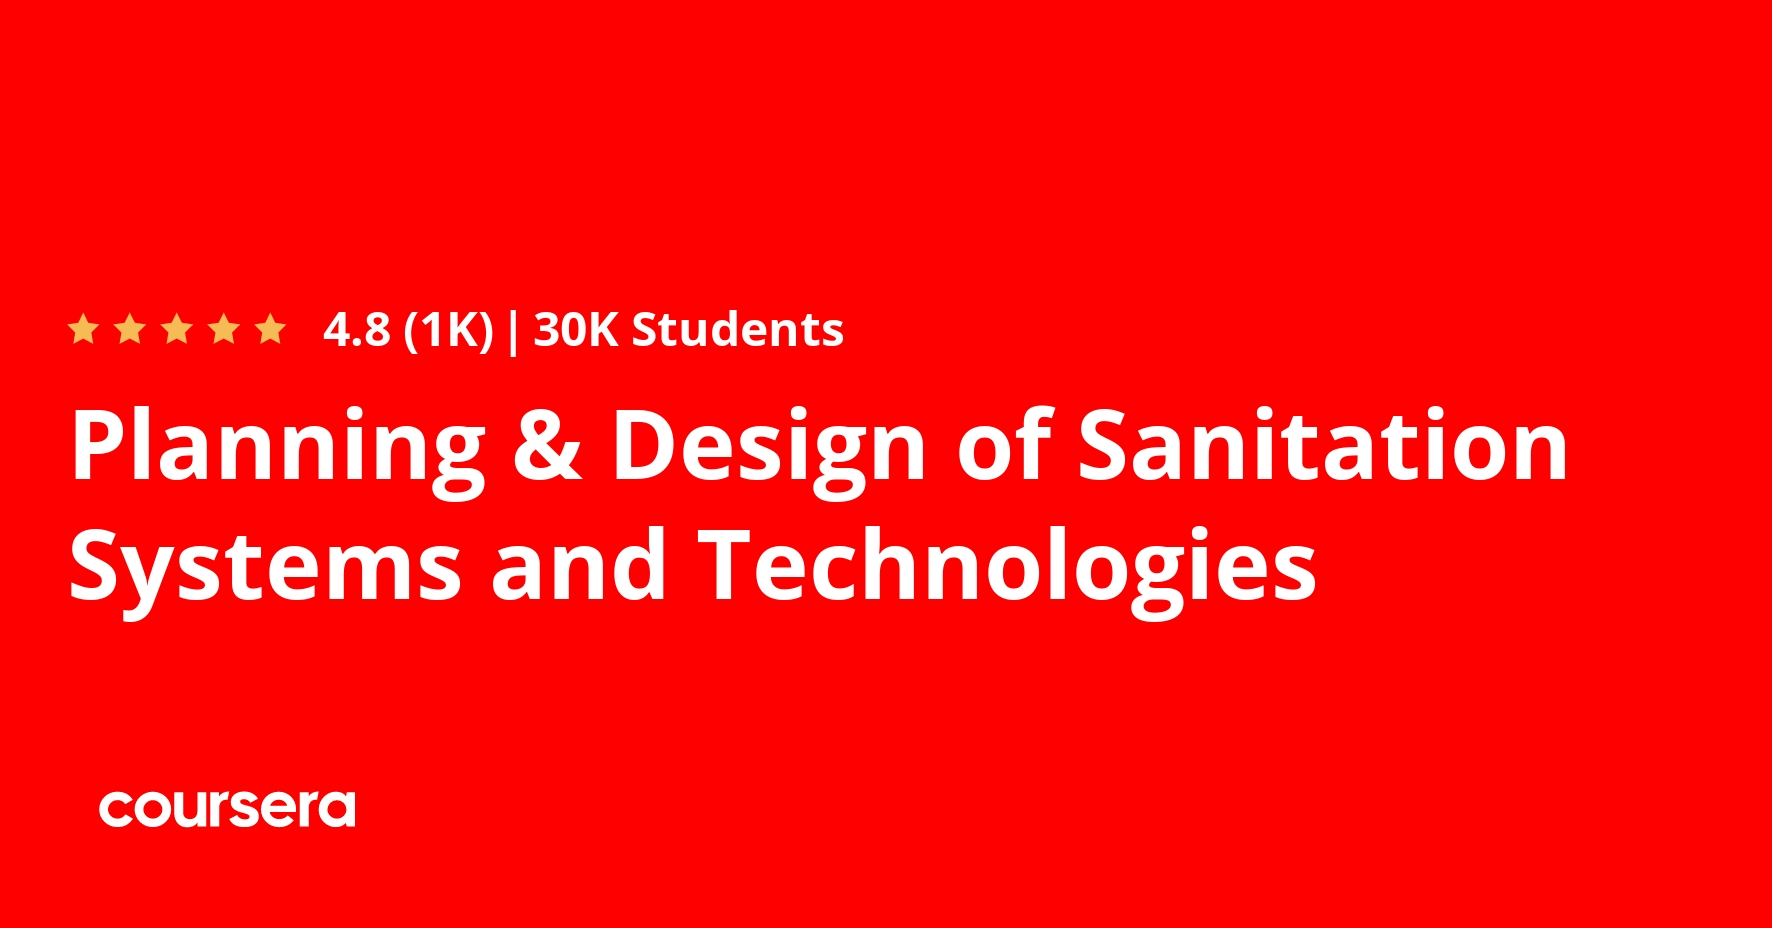 Planning & Design of Sanitation Systems and Technologies